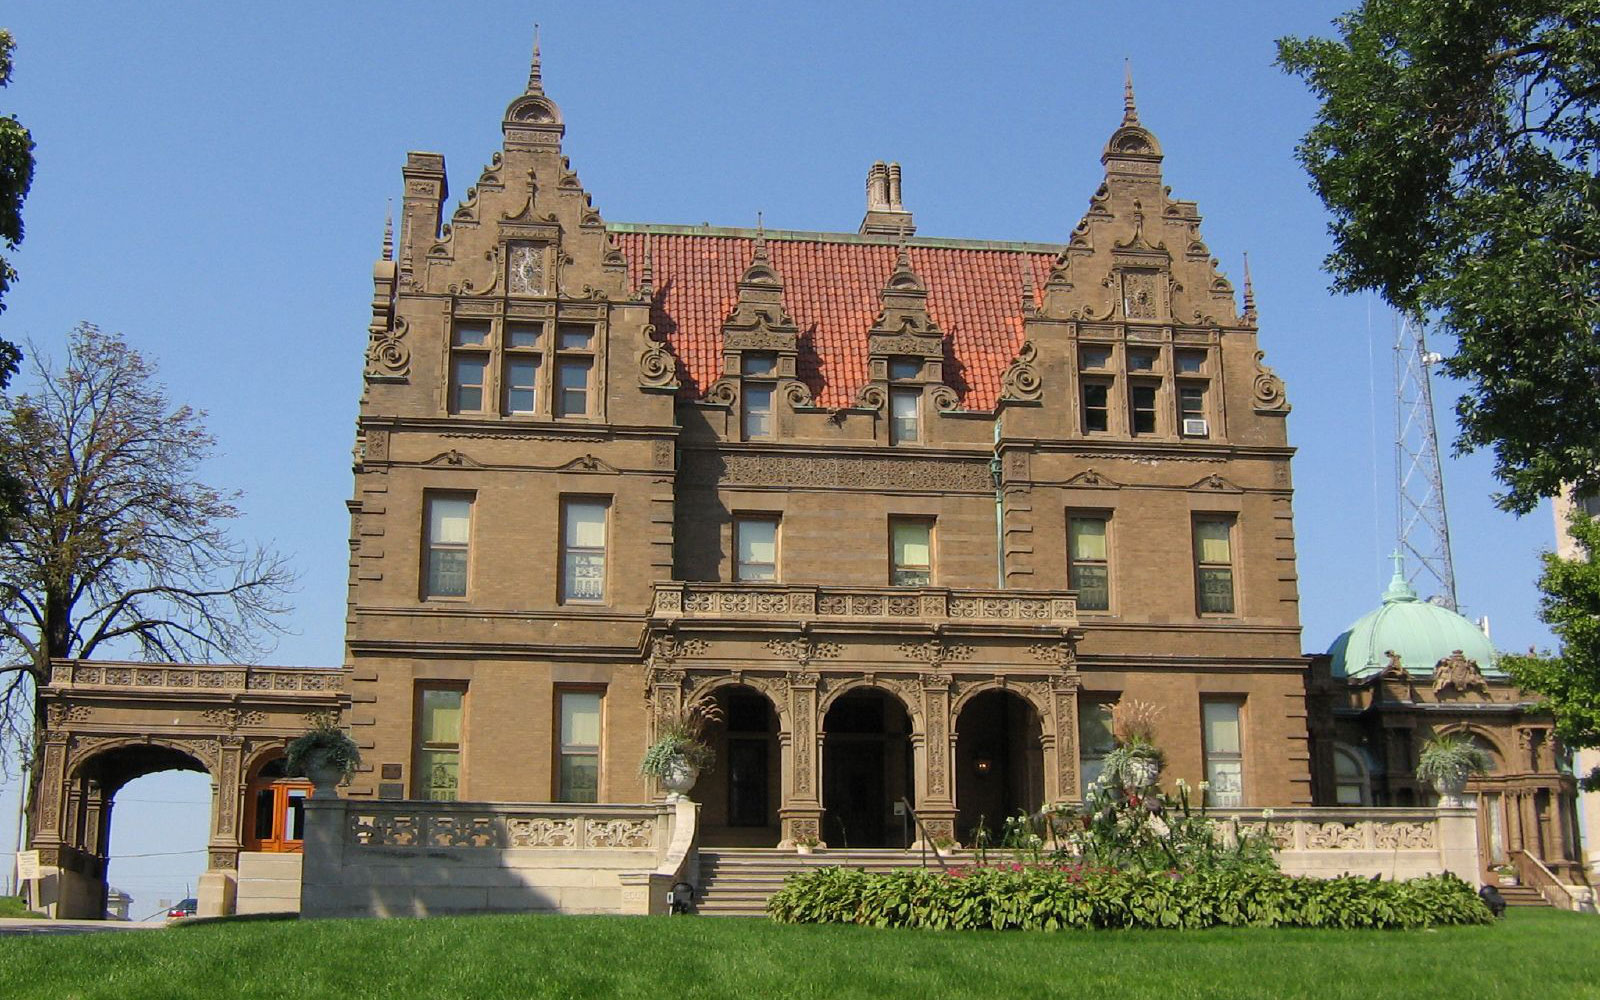 Take a Frederick Pabst Mansion Tour